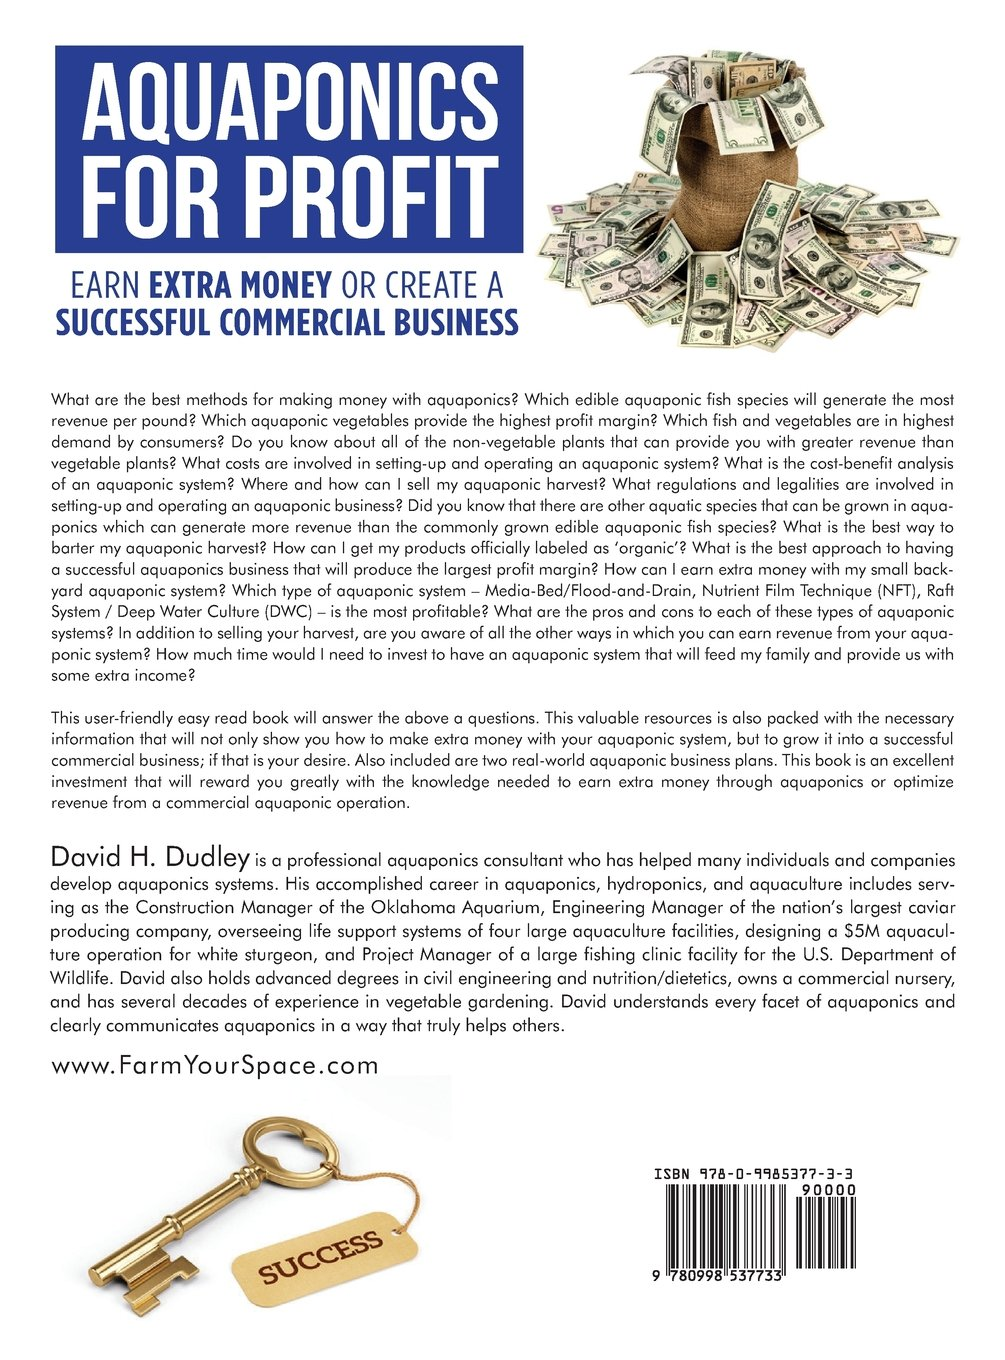 Aquaponics for Profit: Earn Extra Money or Create a Successful Commercial Business